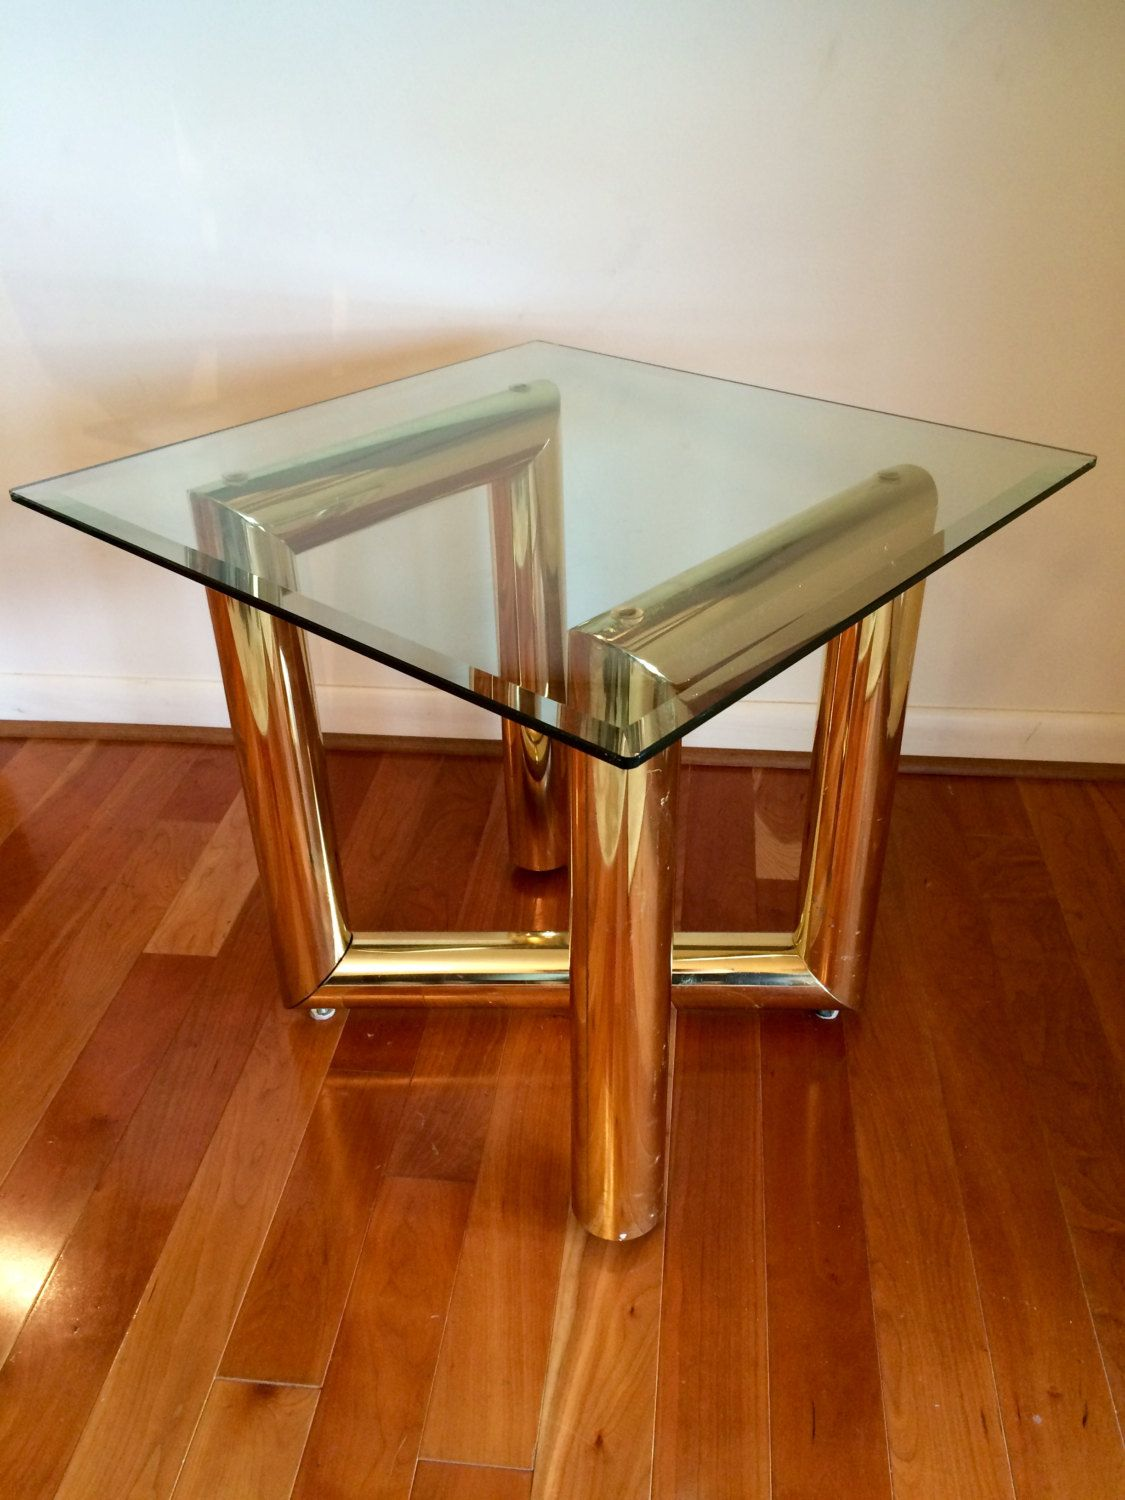 Karl Springer Large Side Table Z Shaped Occasional Table Mid Etsy Side Table Unusual Furniture Occasional Table [ 1500 x 1125 Pixel ]